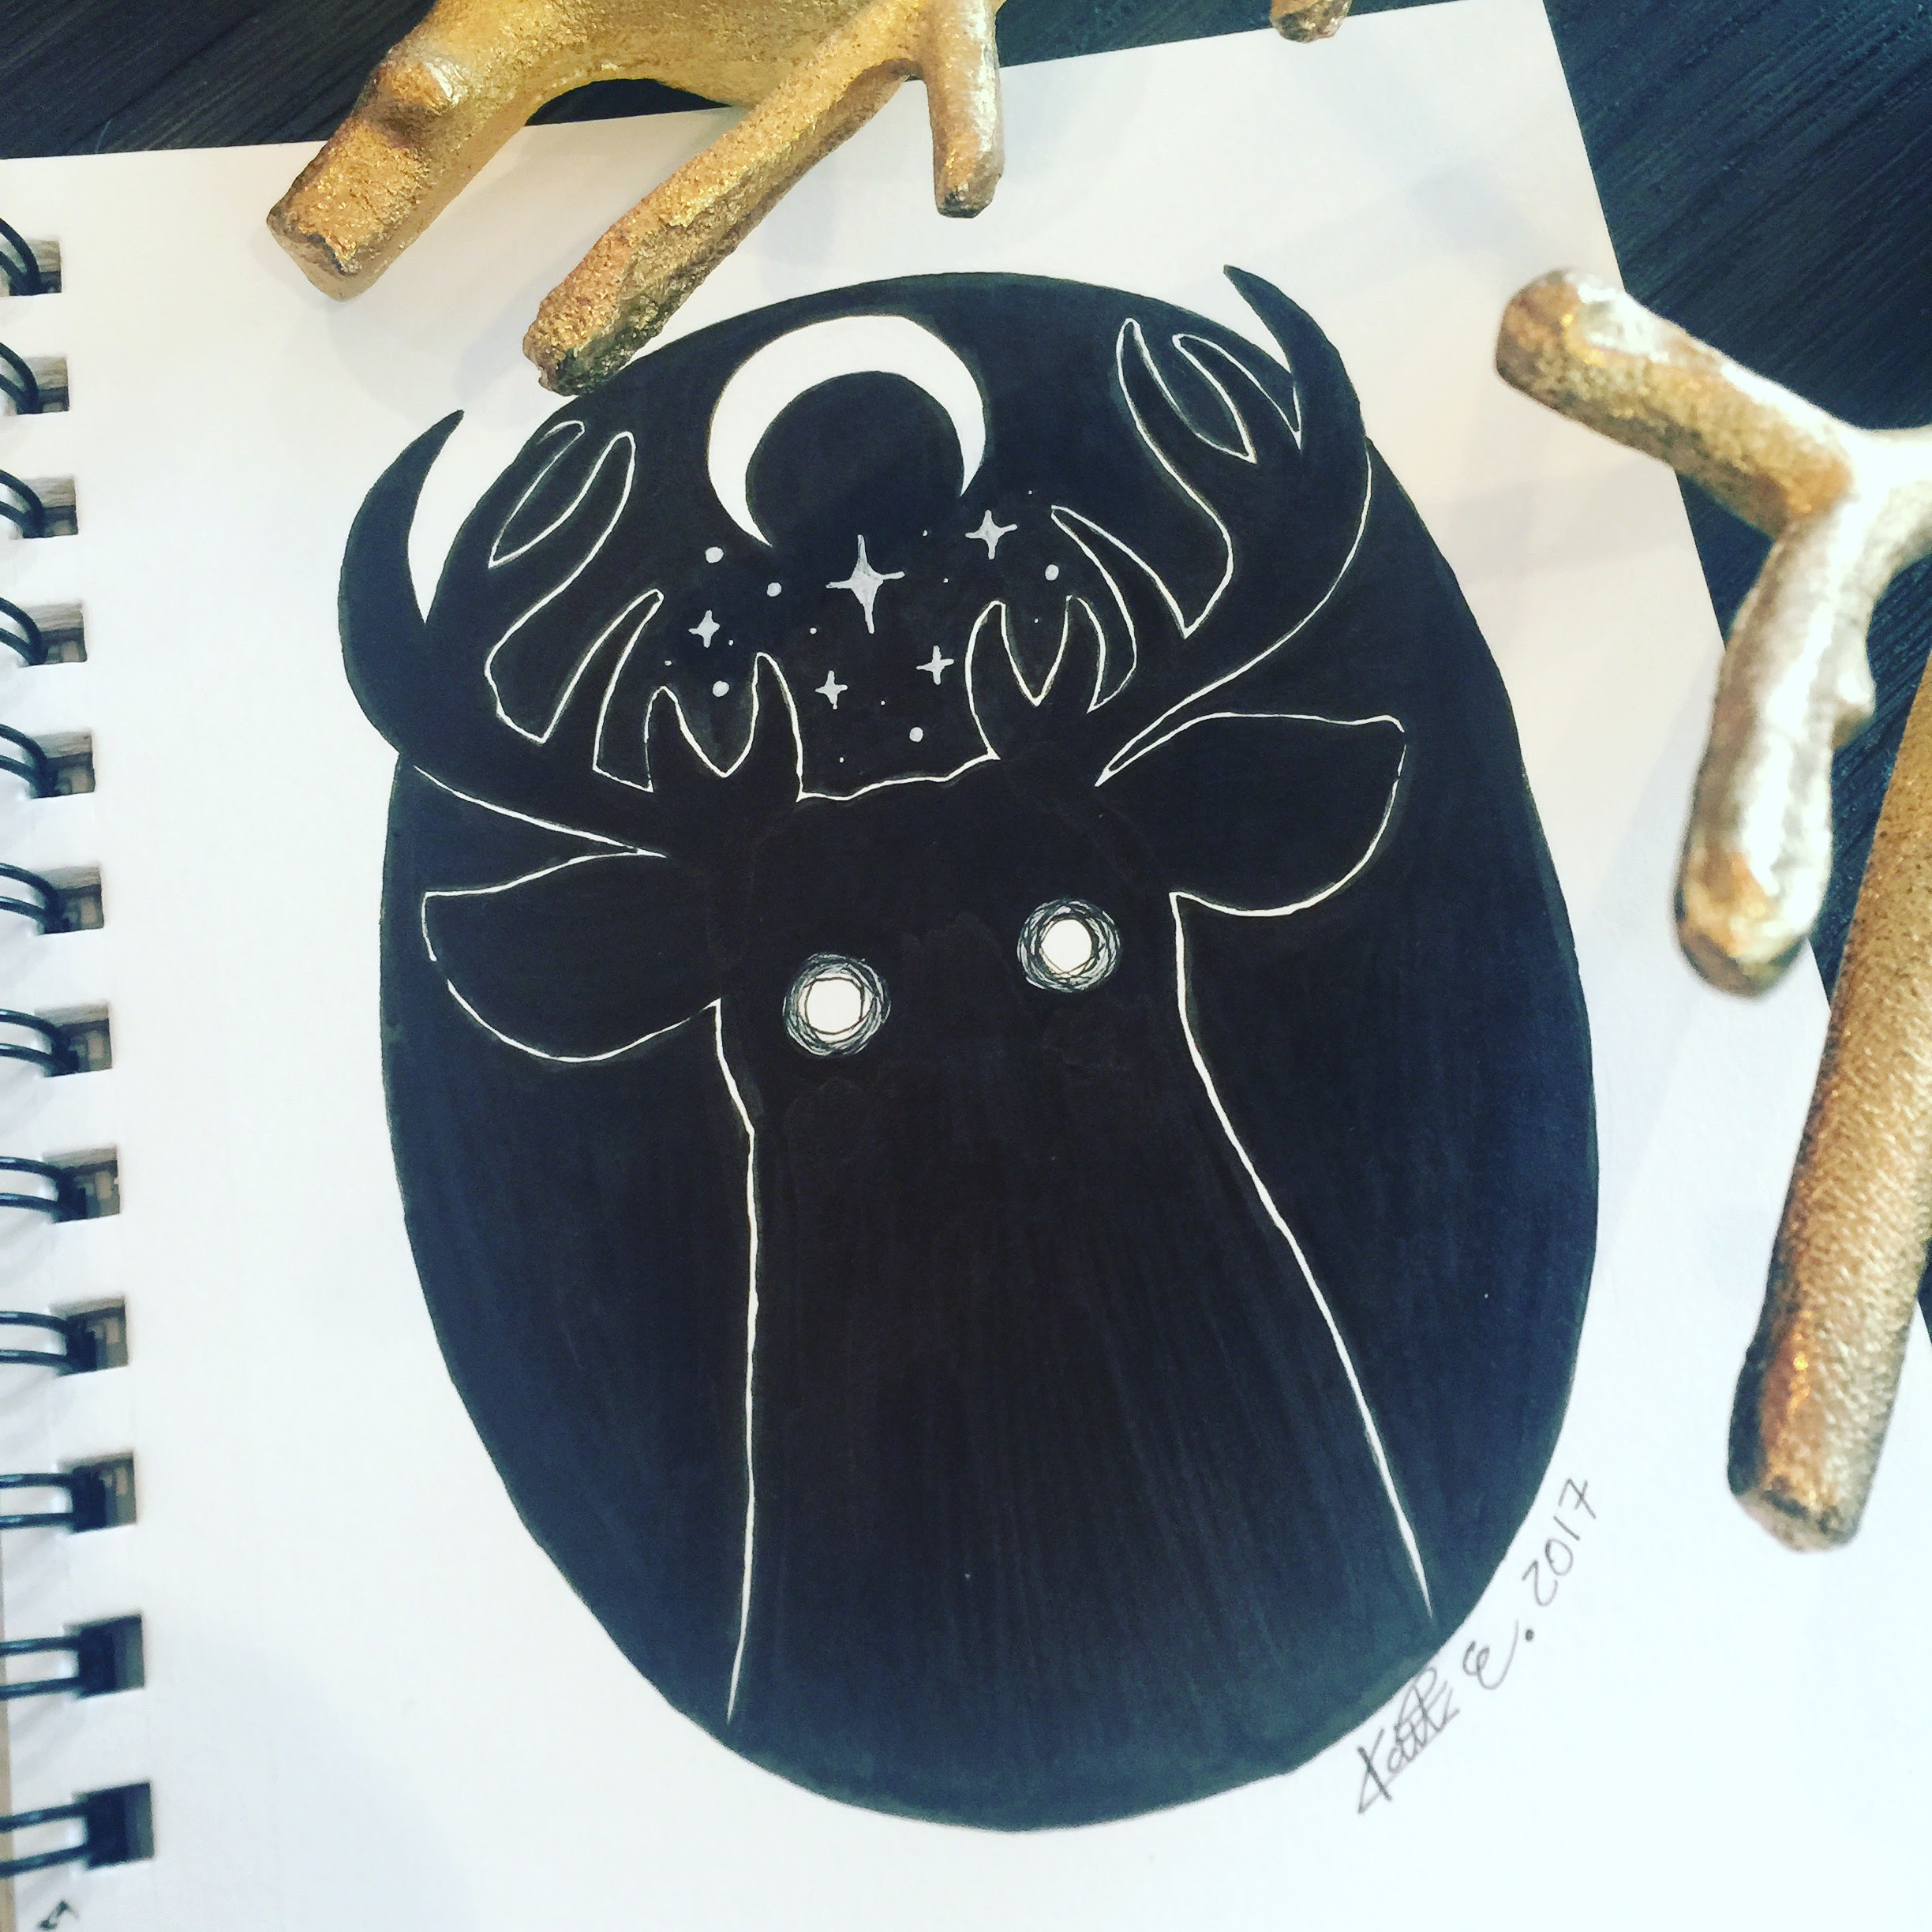 Day 20: The Moon God